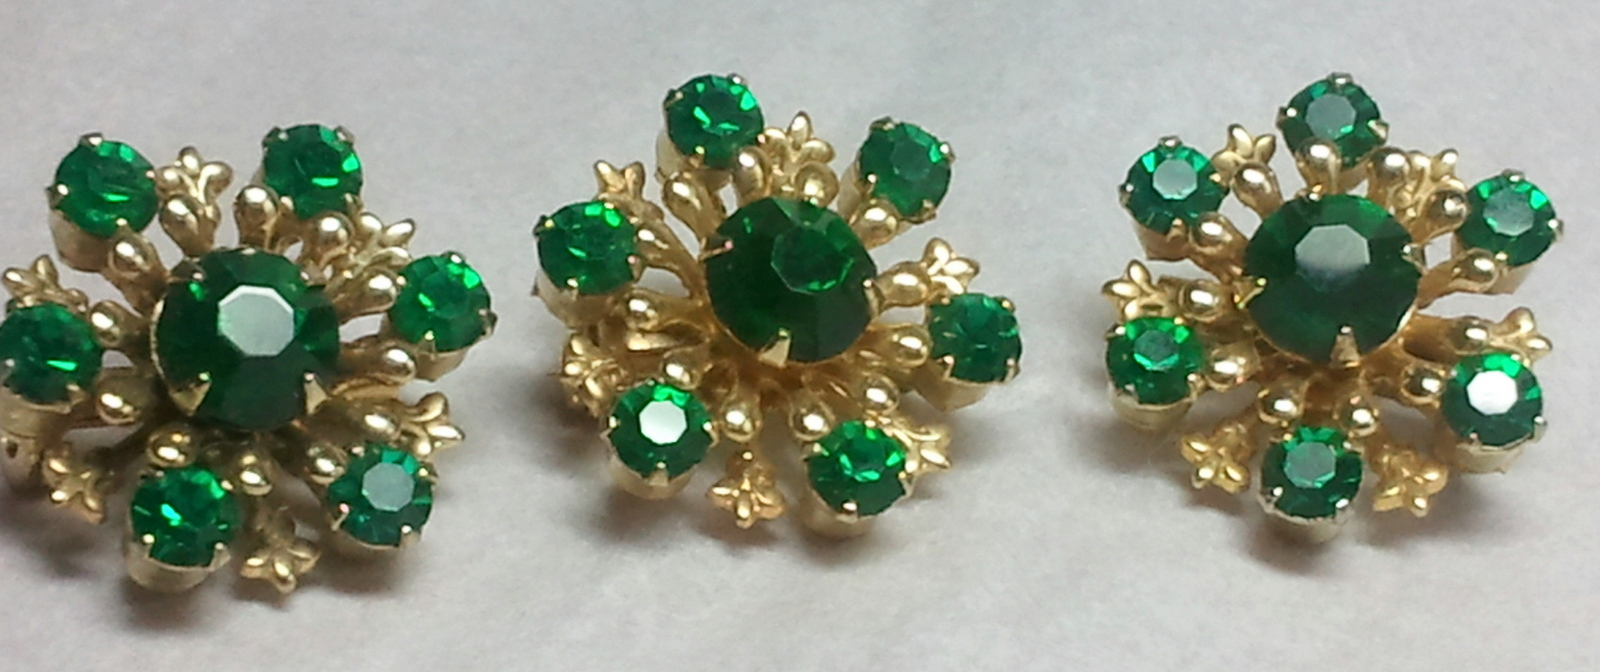 3 Vintage Emerald Green Scatter Pins